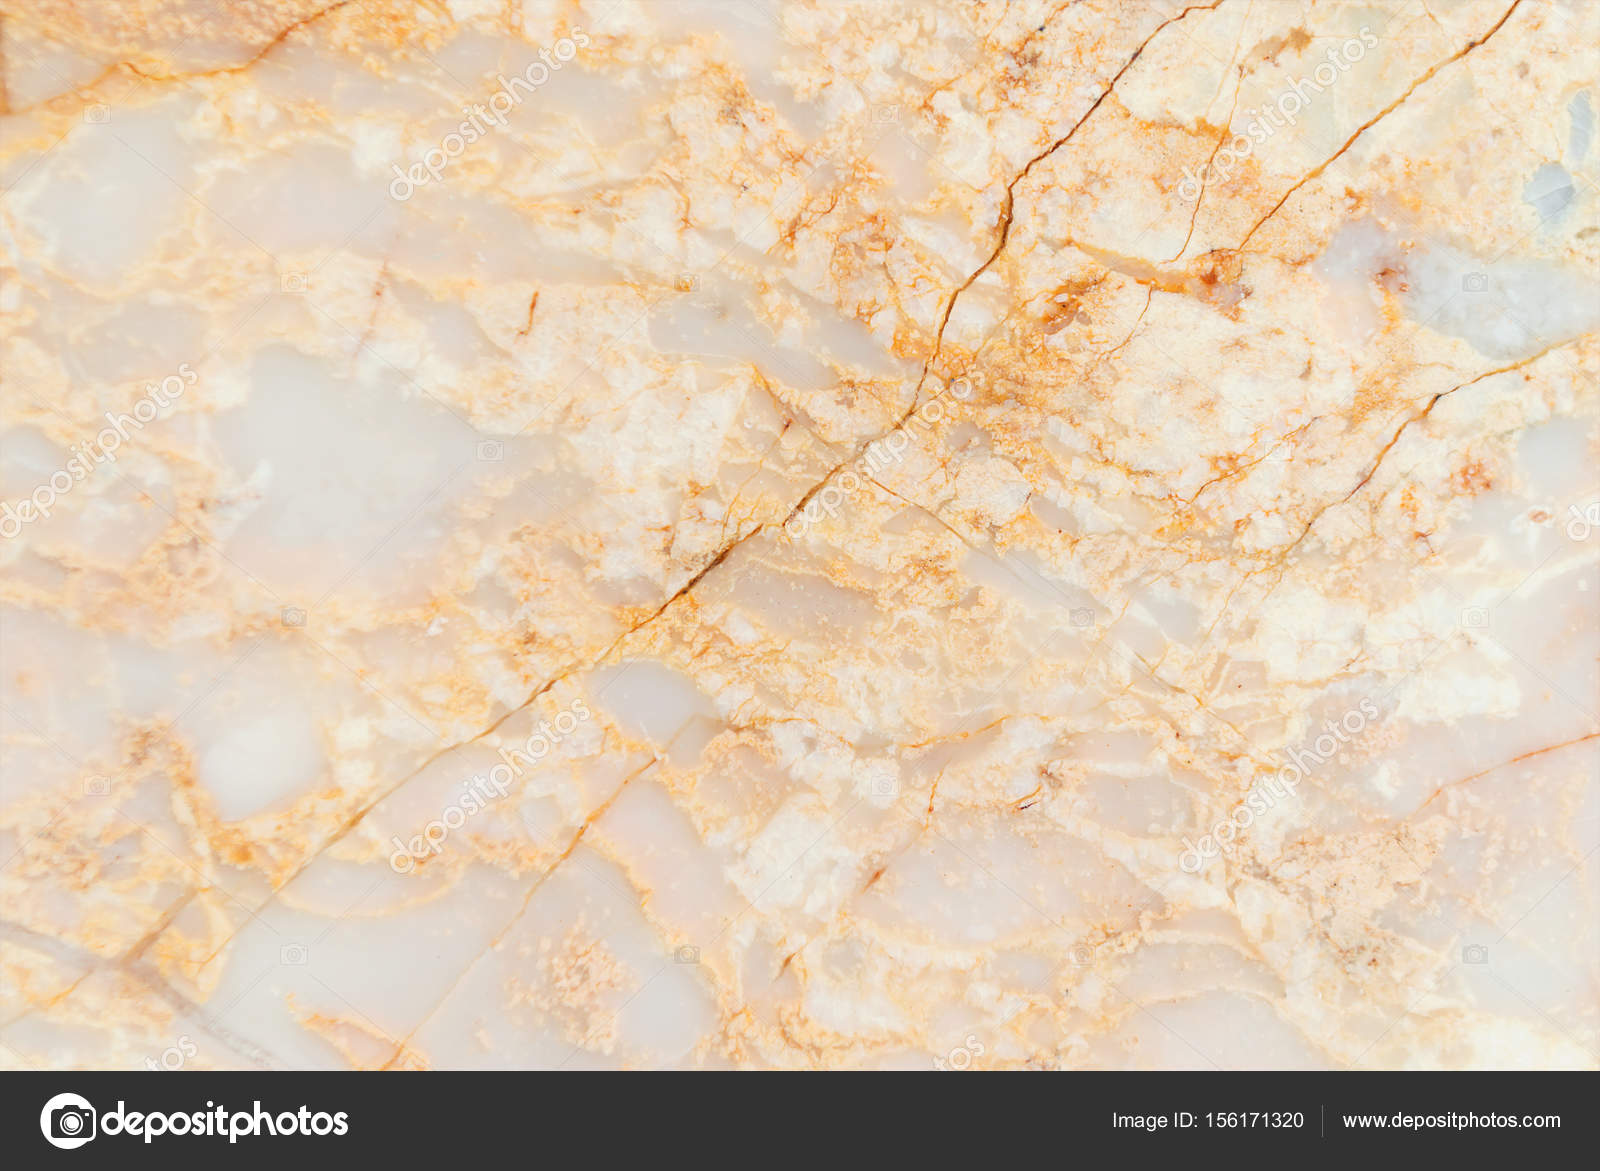 Brown Marble Texture Natural Pattern Wallpaper Backdrop Background Can Also Stock Photo C Aioonrak Gmail Com 156171320